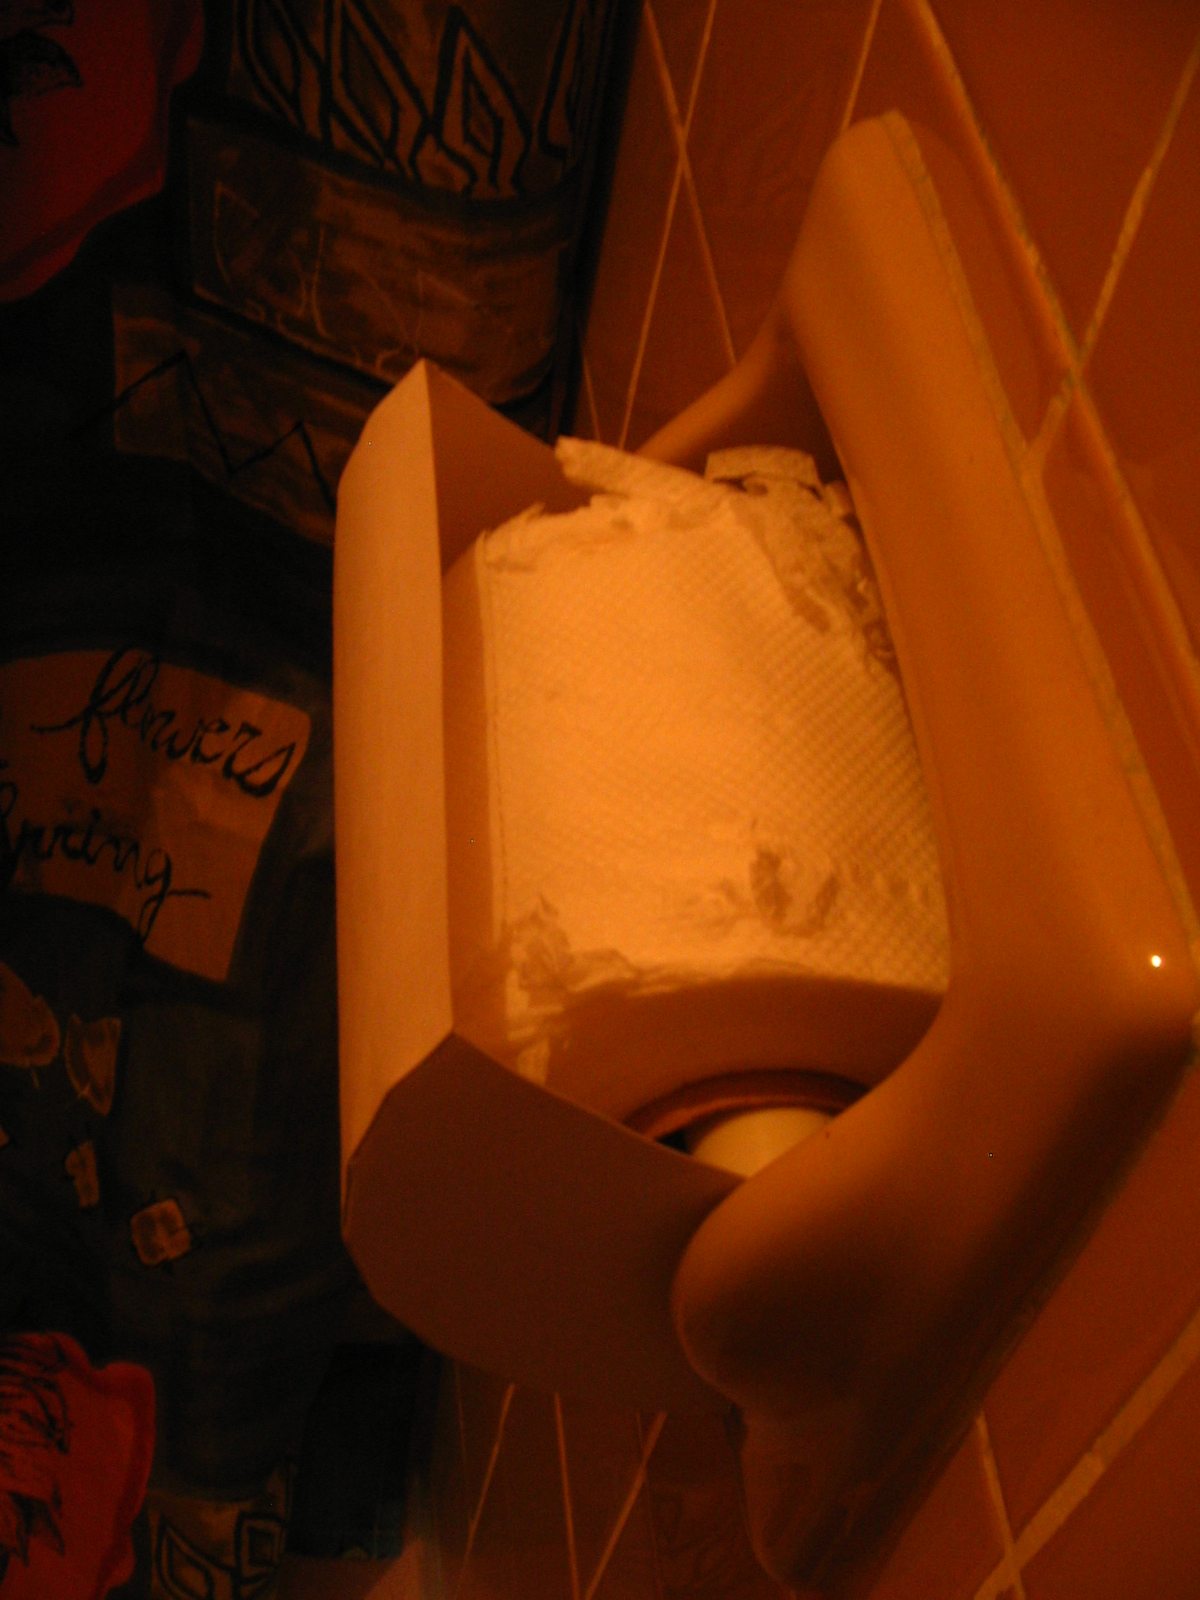 Gawang papel how to make your own toilet paper shield for Design your own toilet paper